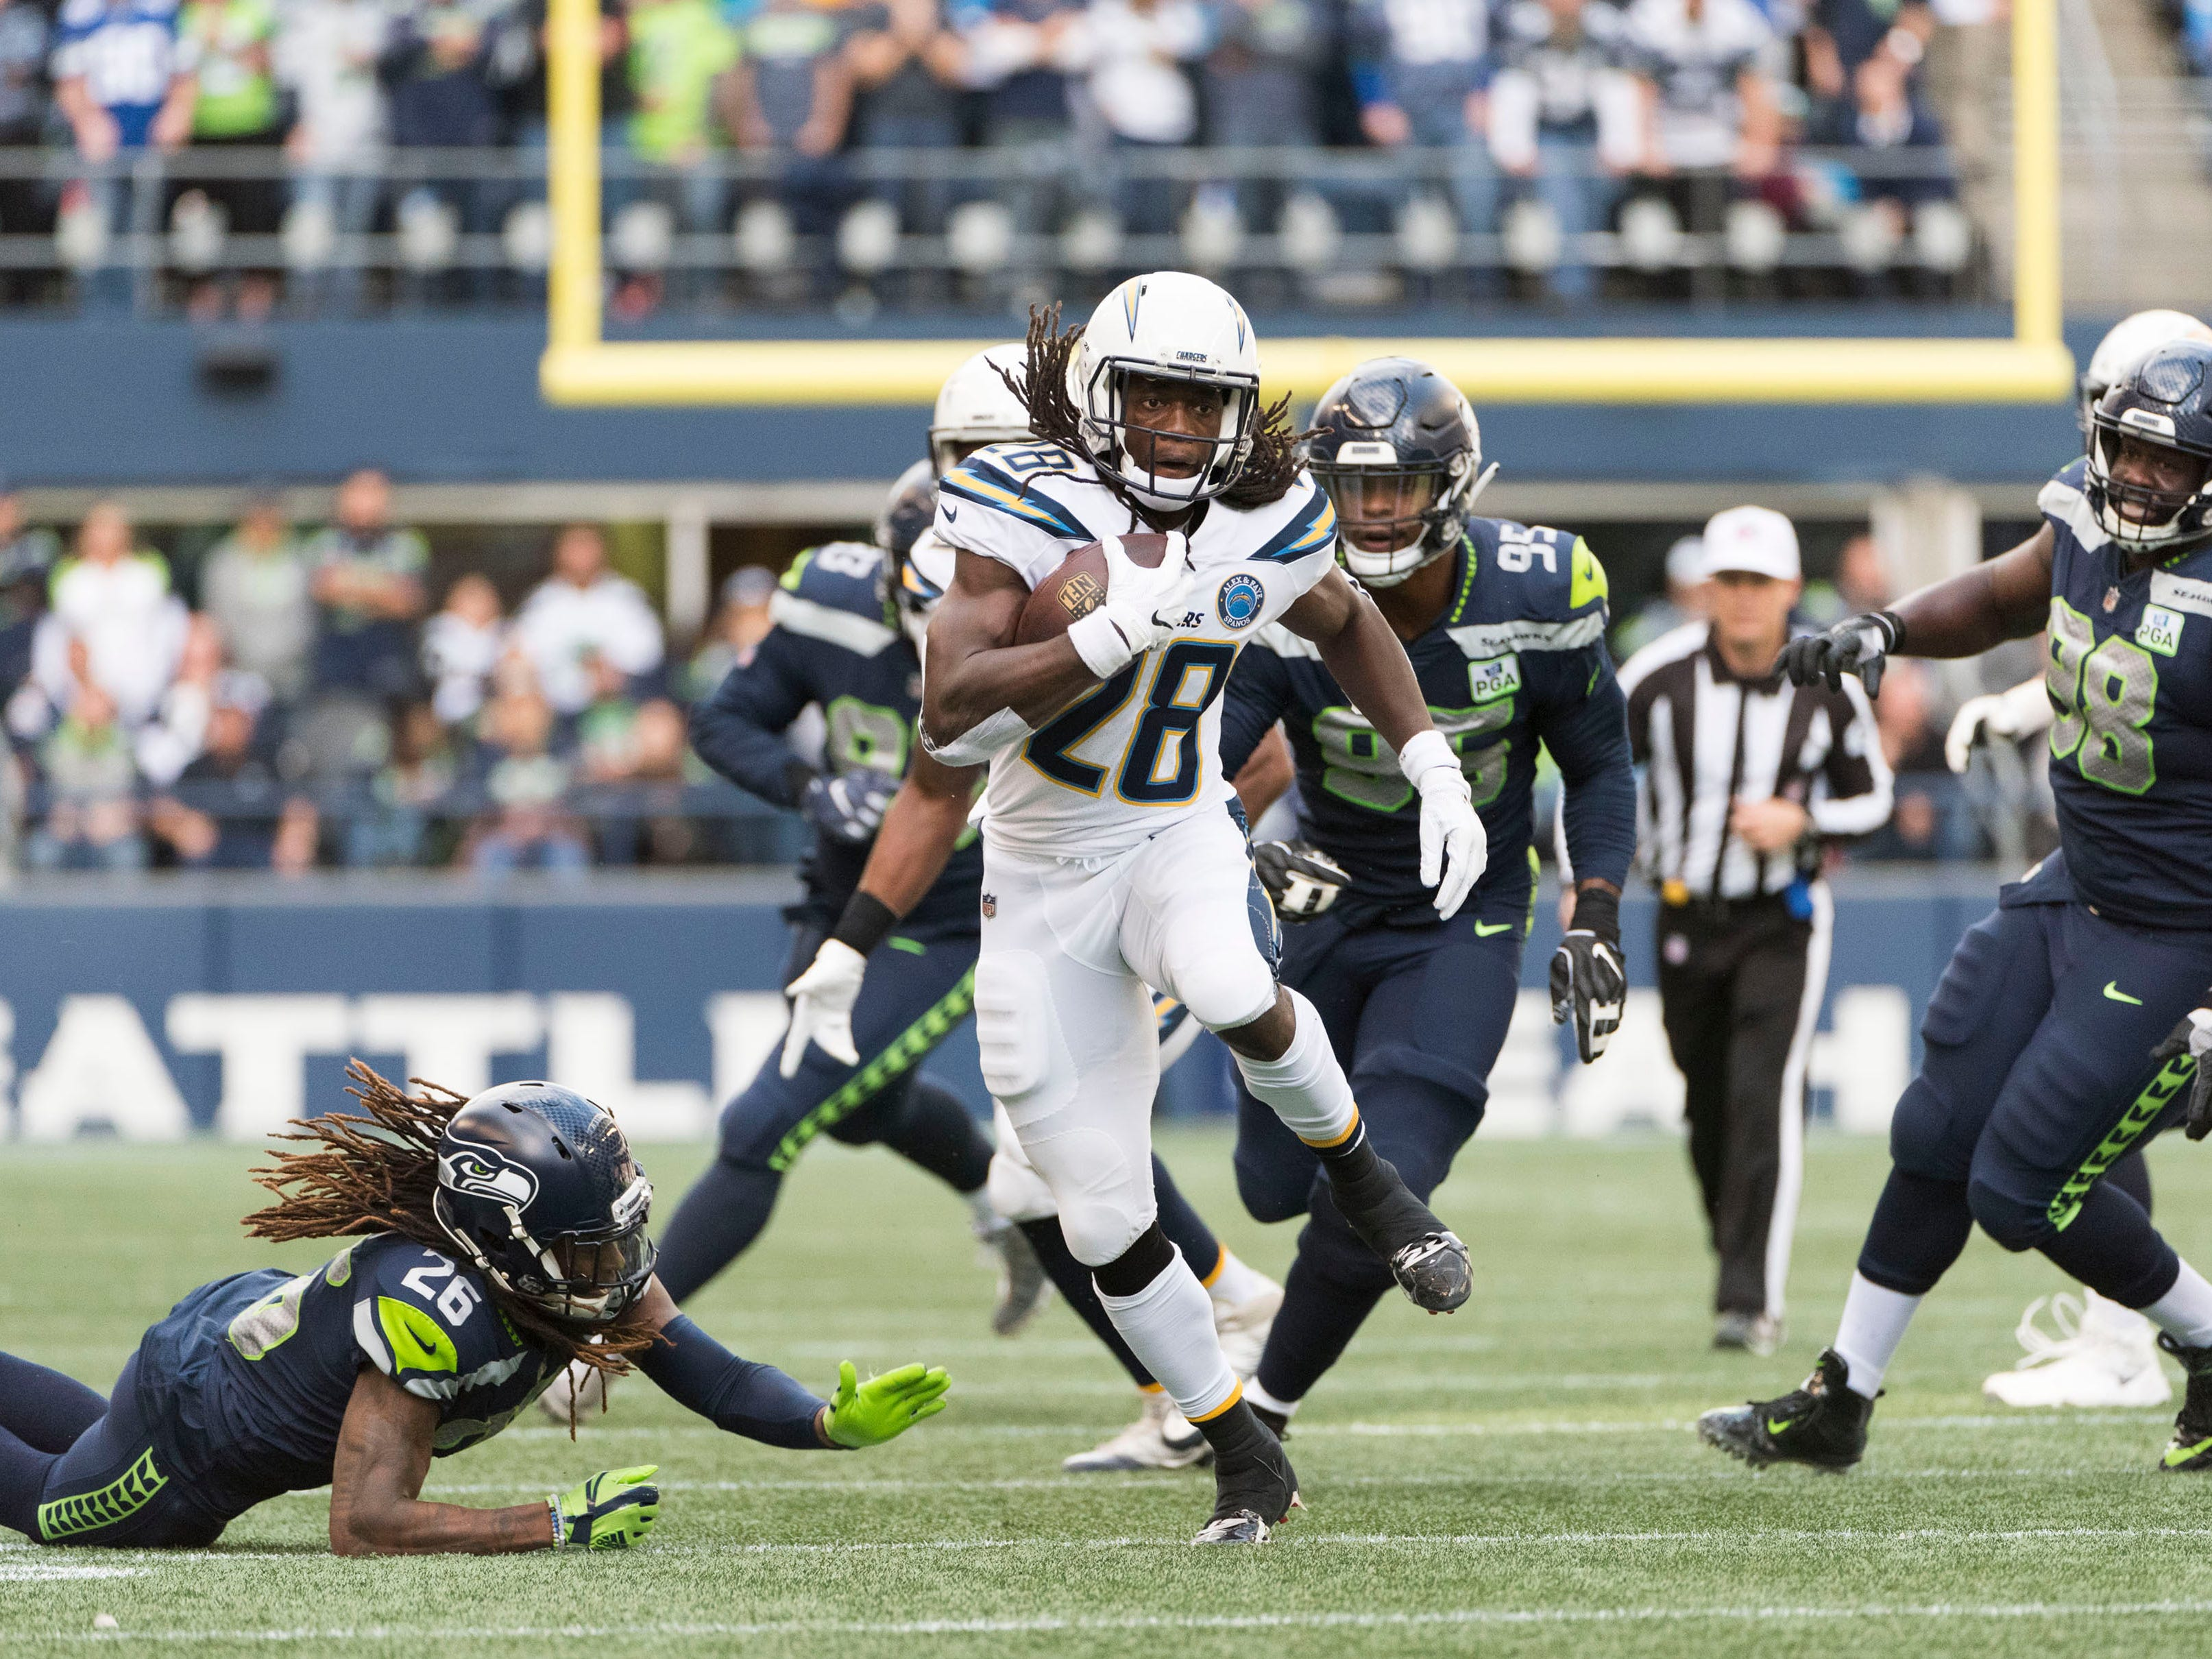 Los Angeles Chargers running back Melvin Gordon (28) gets loose against the Seattle Seahawks during the first half at CenturyLink Field.